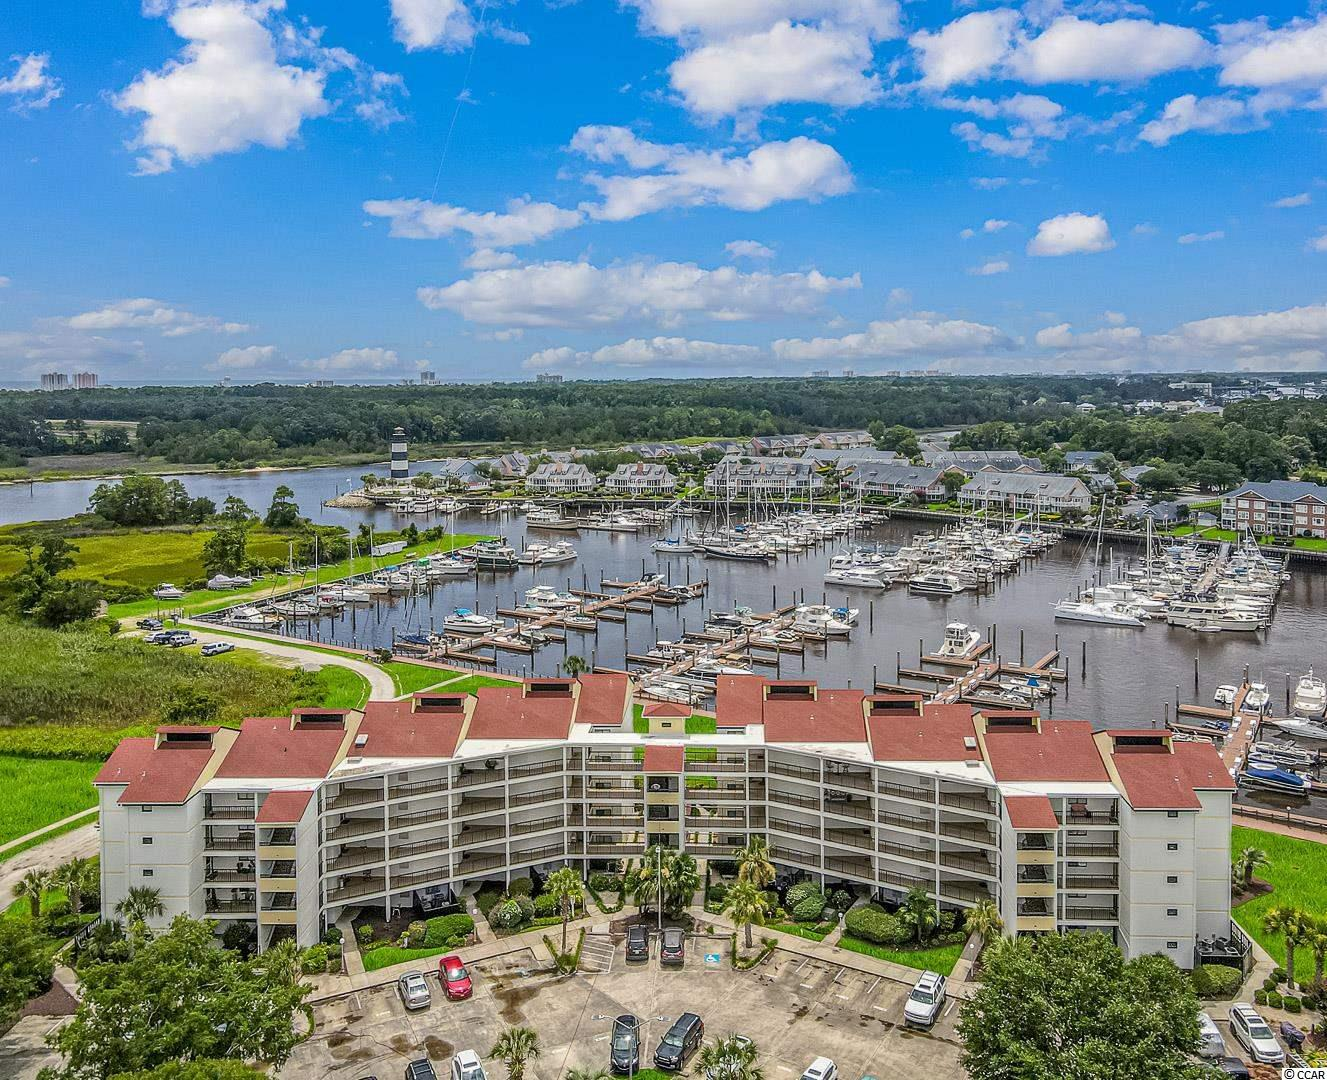 WATERWAY AND HARBOR VIEWS, UPDATED THROUGHOUT, 3 BOAT SLIPS! This gorgeous 2 bedroom 2 bath unit in the highly sought after Coquina Harbour community checks all the boxes for your new coastal lifestyle.  Located on the fourth floor in an elevator building,  this showstopper delivers views for days over the marina and the ICW!!  Spend your early mornings and late evenings on your over sized, wrap around back balcony and soak up nautical life at its best.  This unit has been beautifully maintained and upgrades include tile and laminate flooring throughout, Blanco Copenhagen granite counter tops, Samsung stainless appliance package, new cabinetry, new HVAC in 2020, wine fridge, lighting fixtures, and many more.  Looking to get out on the water and live it instead of watch it....this unit comes with not one, not two, but THREE deep water boat slips with water and electricity.  Keep your jet skis on one, the pontoon on the other and let your friends come dock in style on the third!